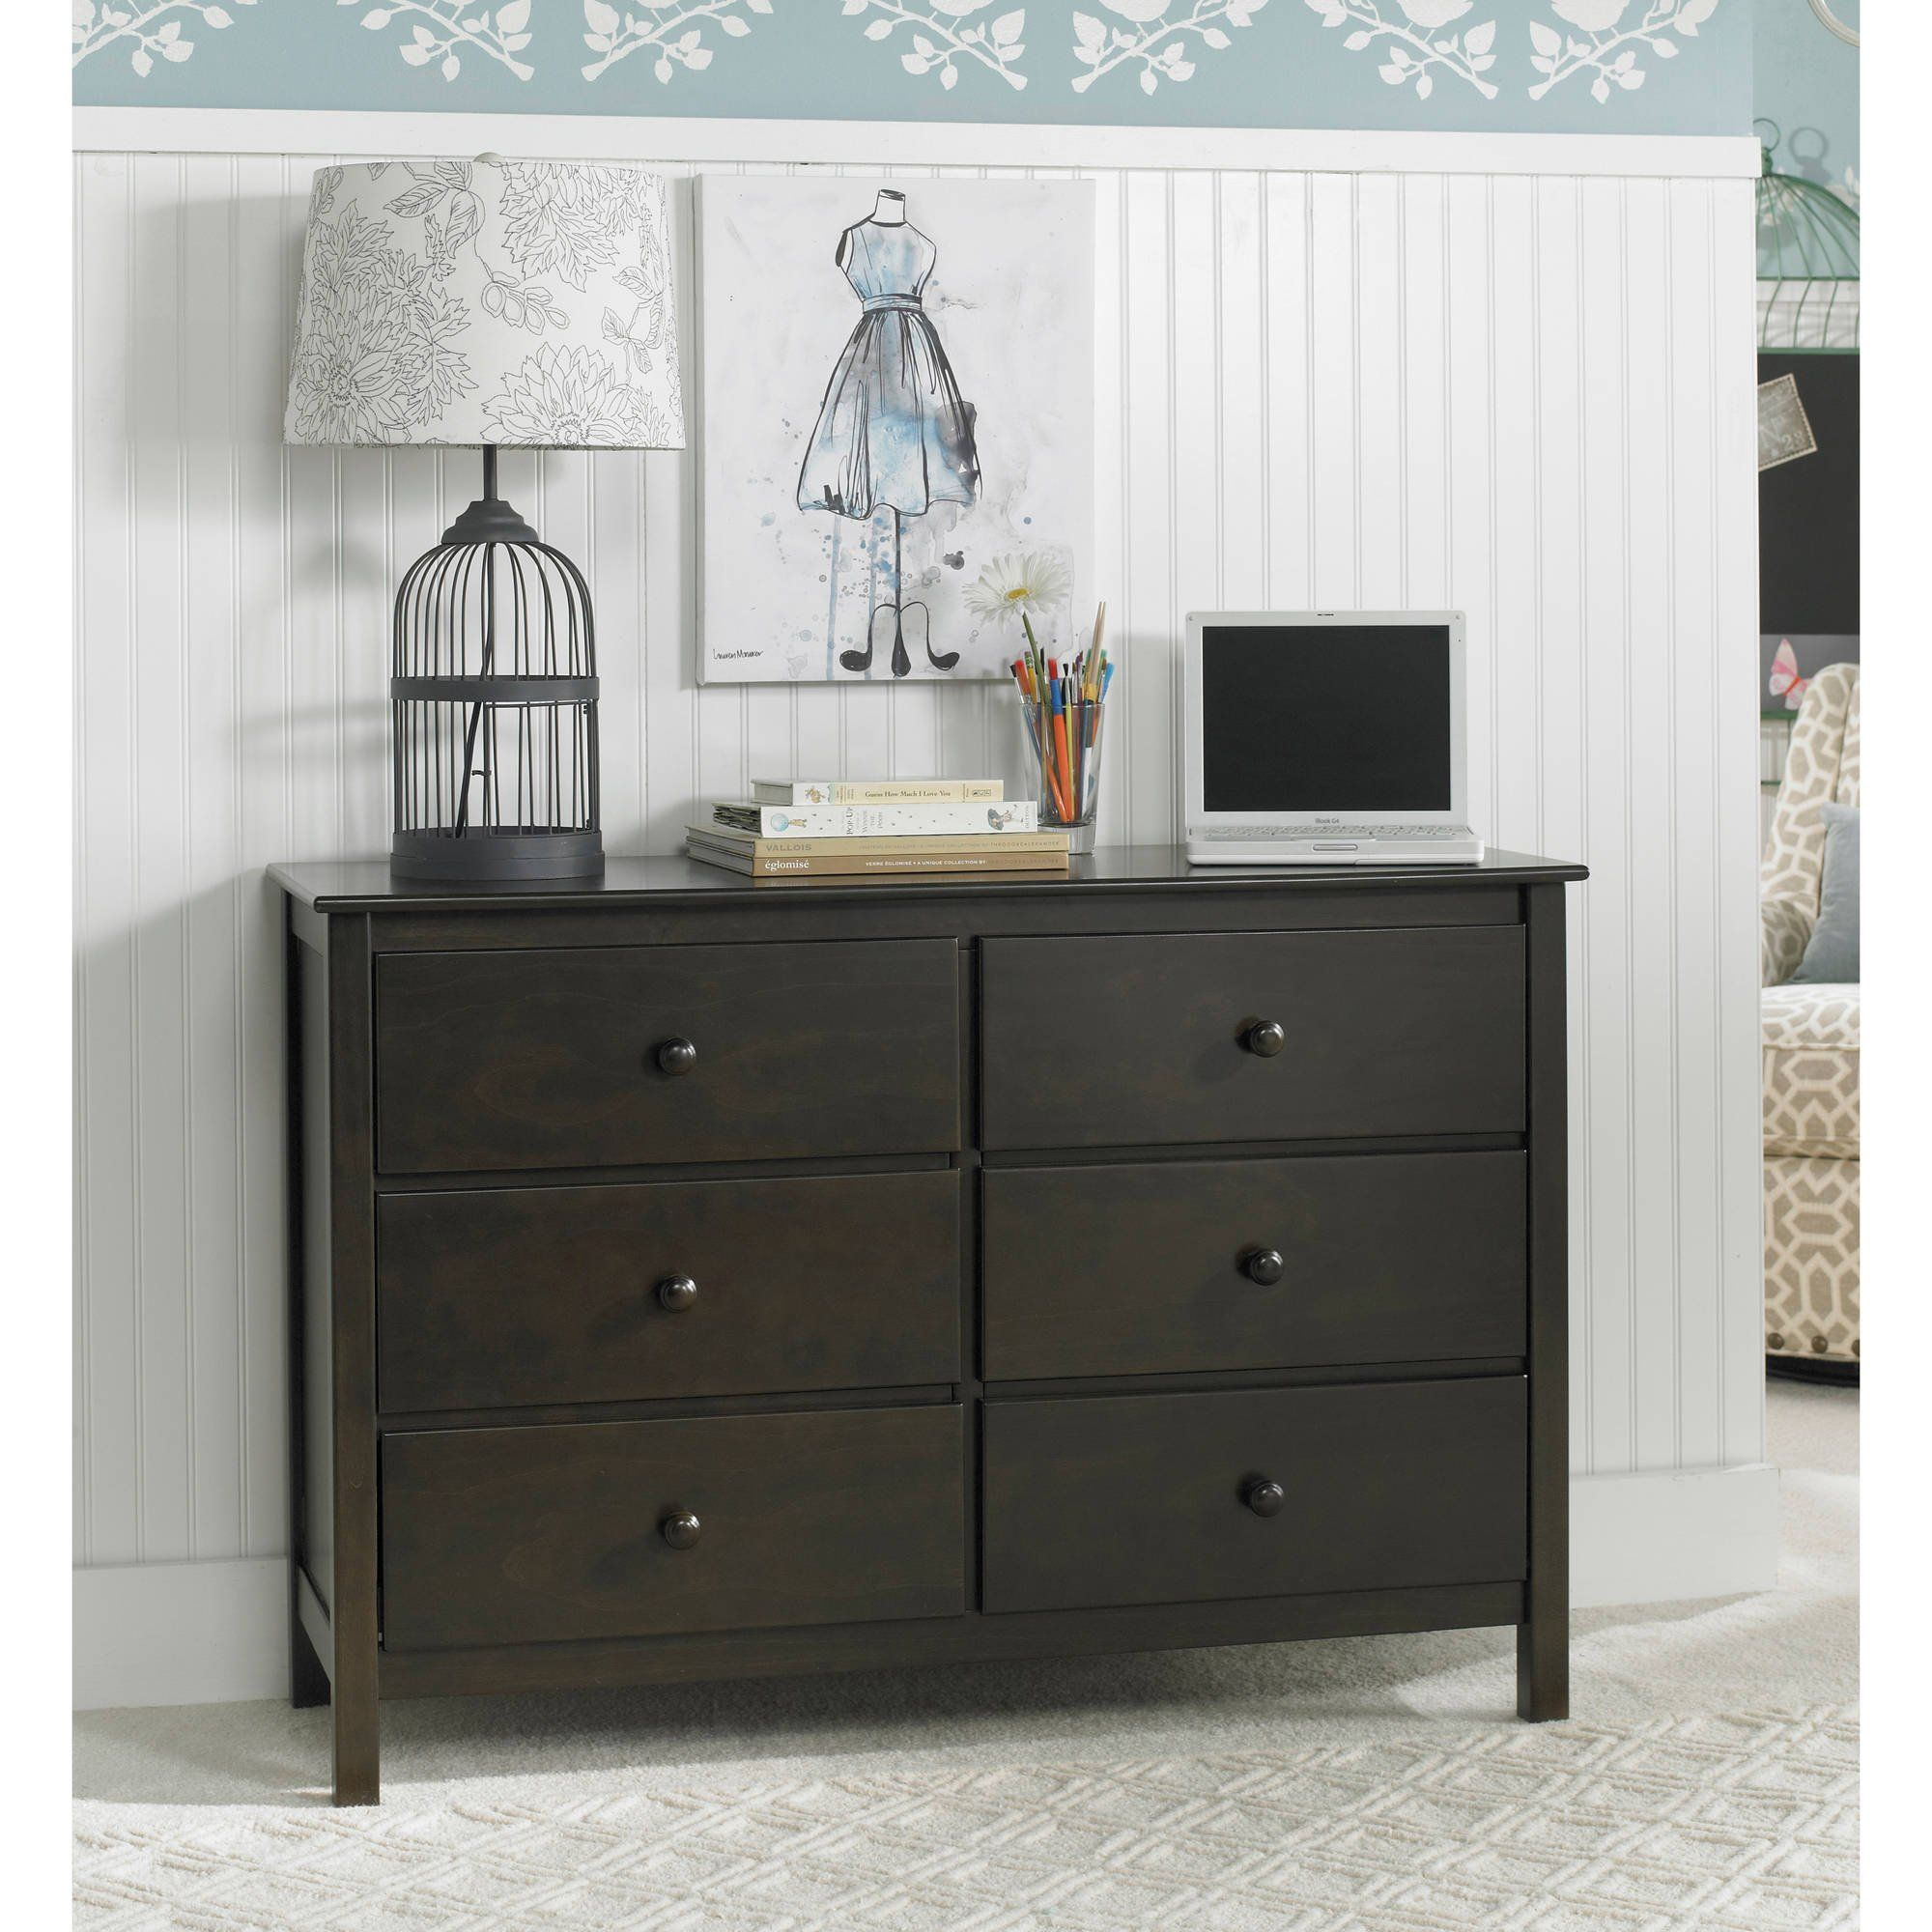 FPE 6 Drawer Double Dresser Choose Your Finish And Hardware Dark  RoastNickel Spacious Drawers Euro Drawer Glides Easy To Assemble Antitip Kit  Easy Assemble Dresser Y85